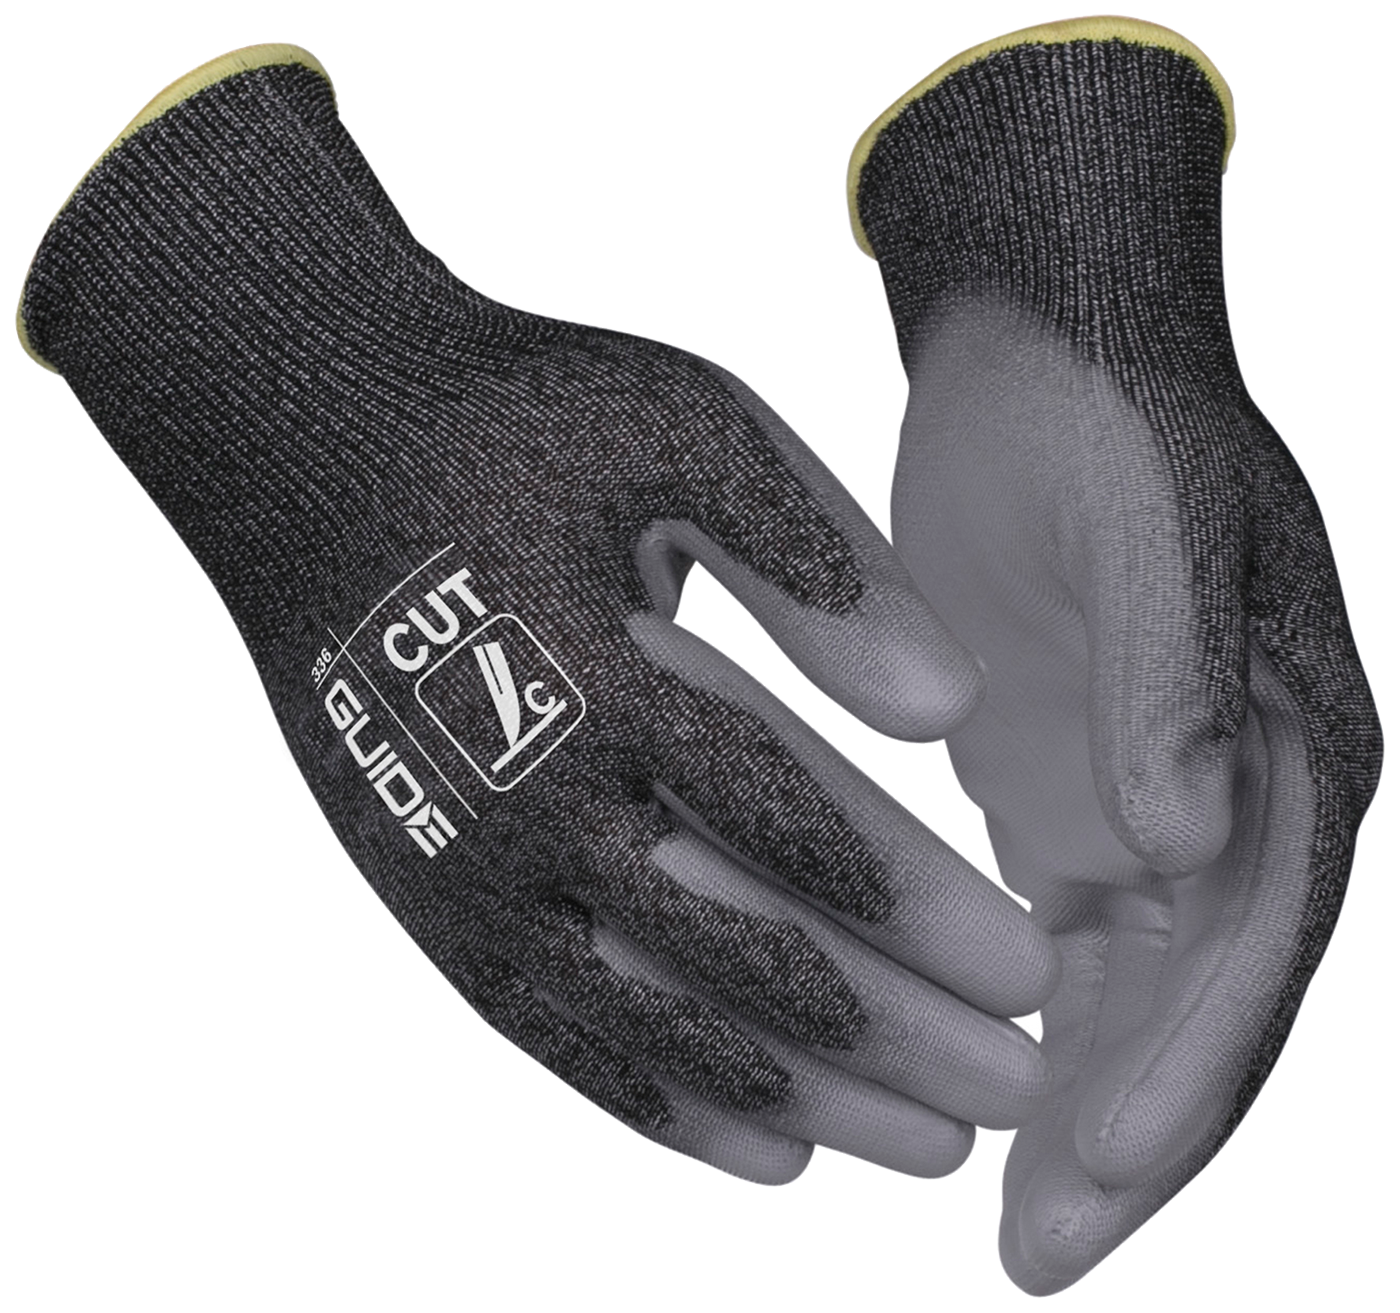 Cut protection glove GUIDE 336